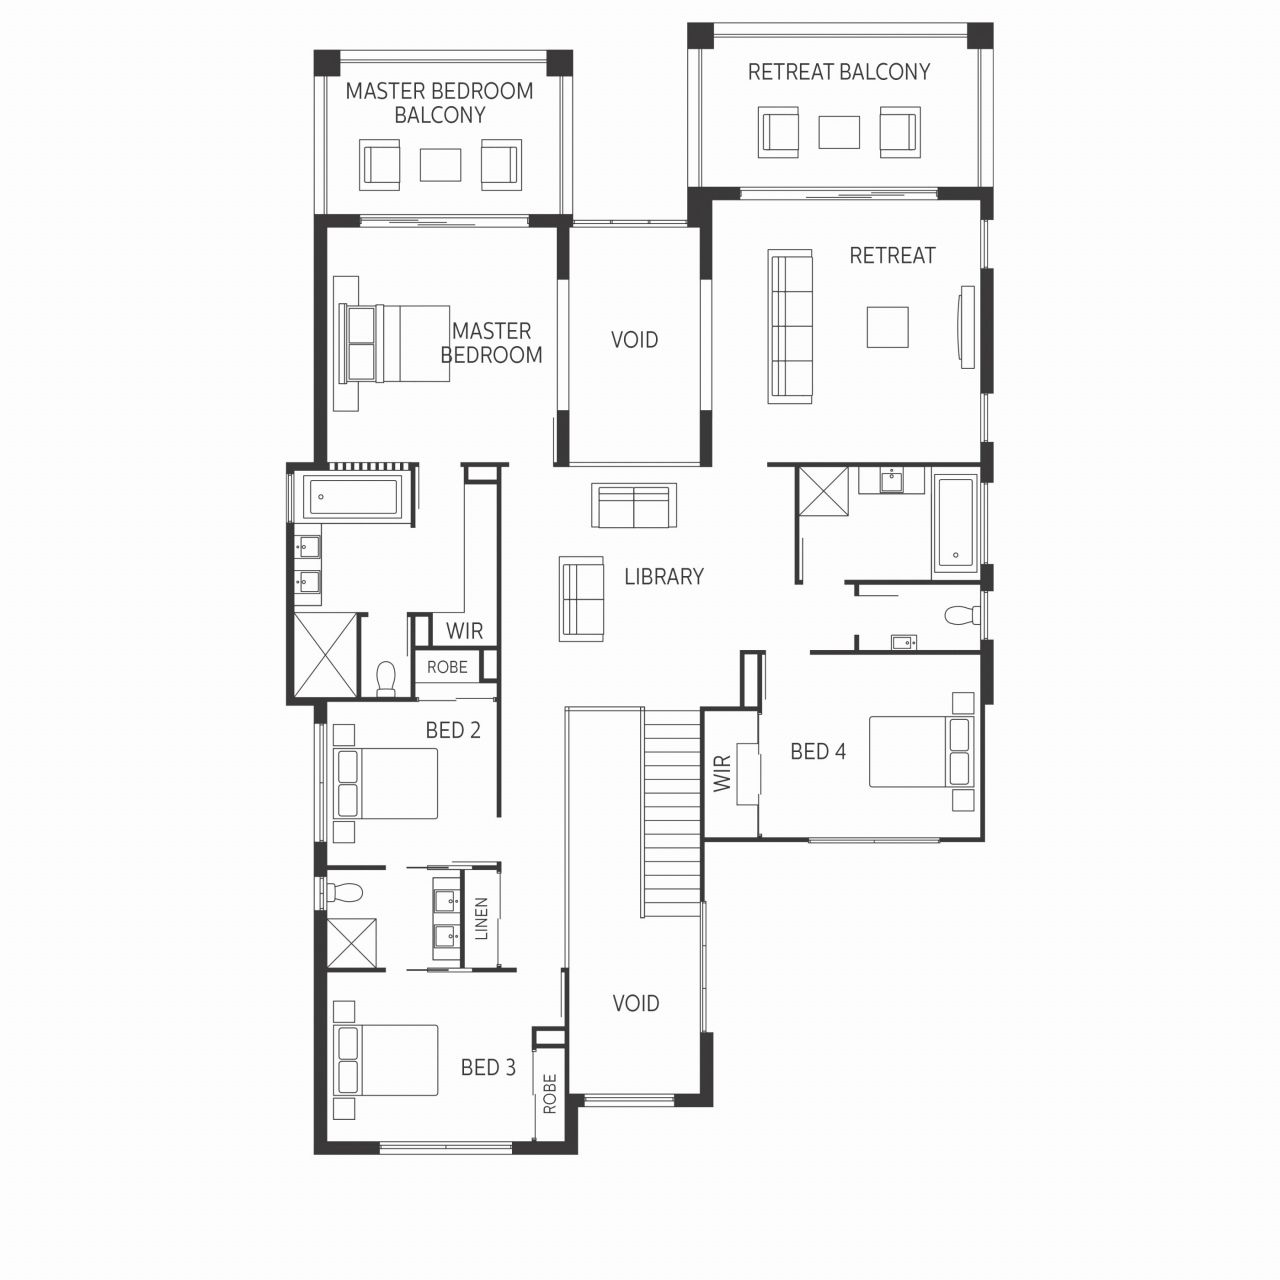 55 Coraline House Floor Plan 2017 Square House Floor Plans House Floor Plans Floor Plan Design